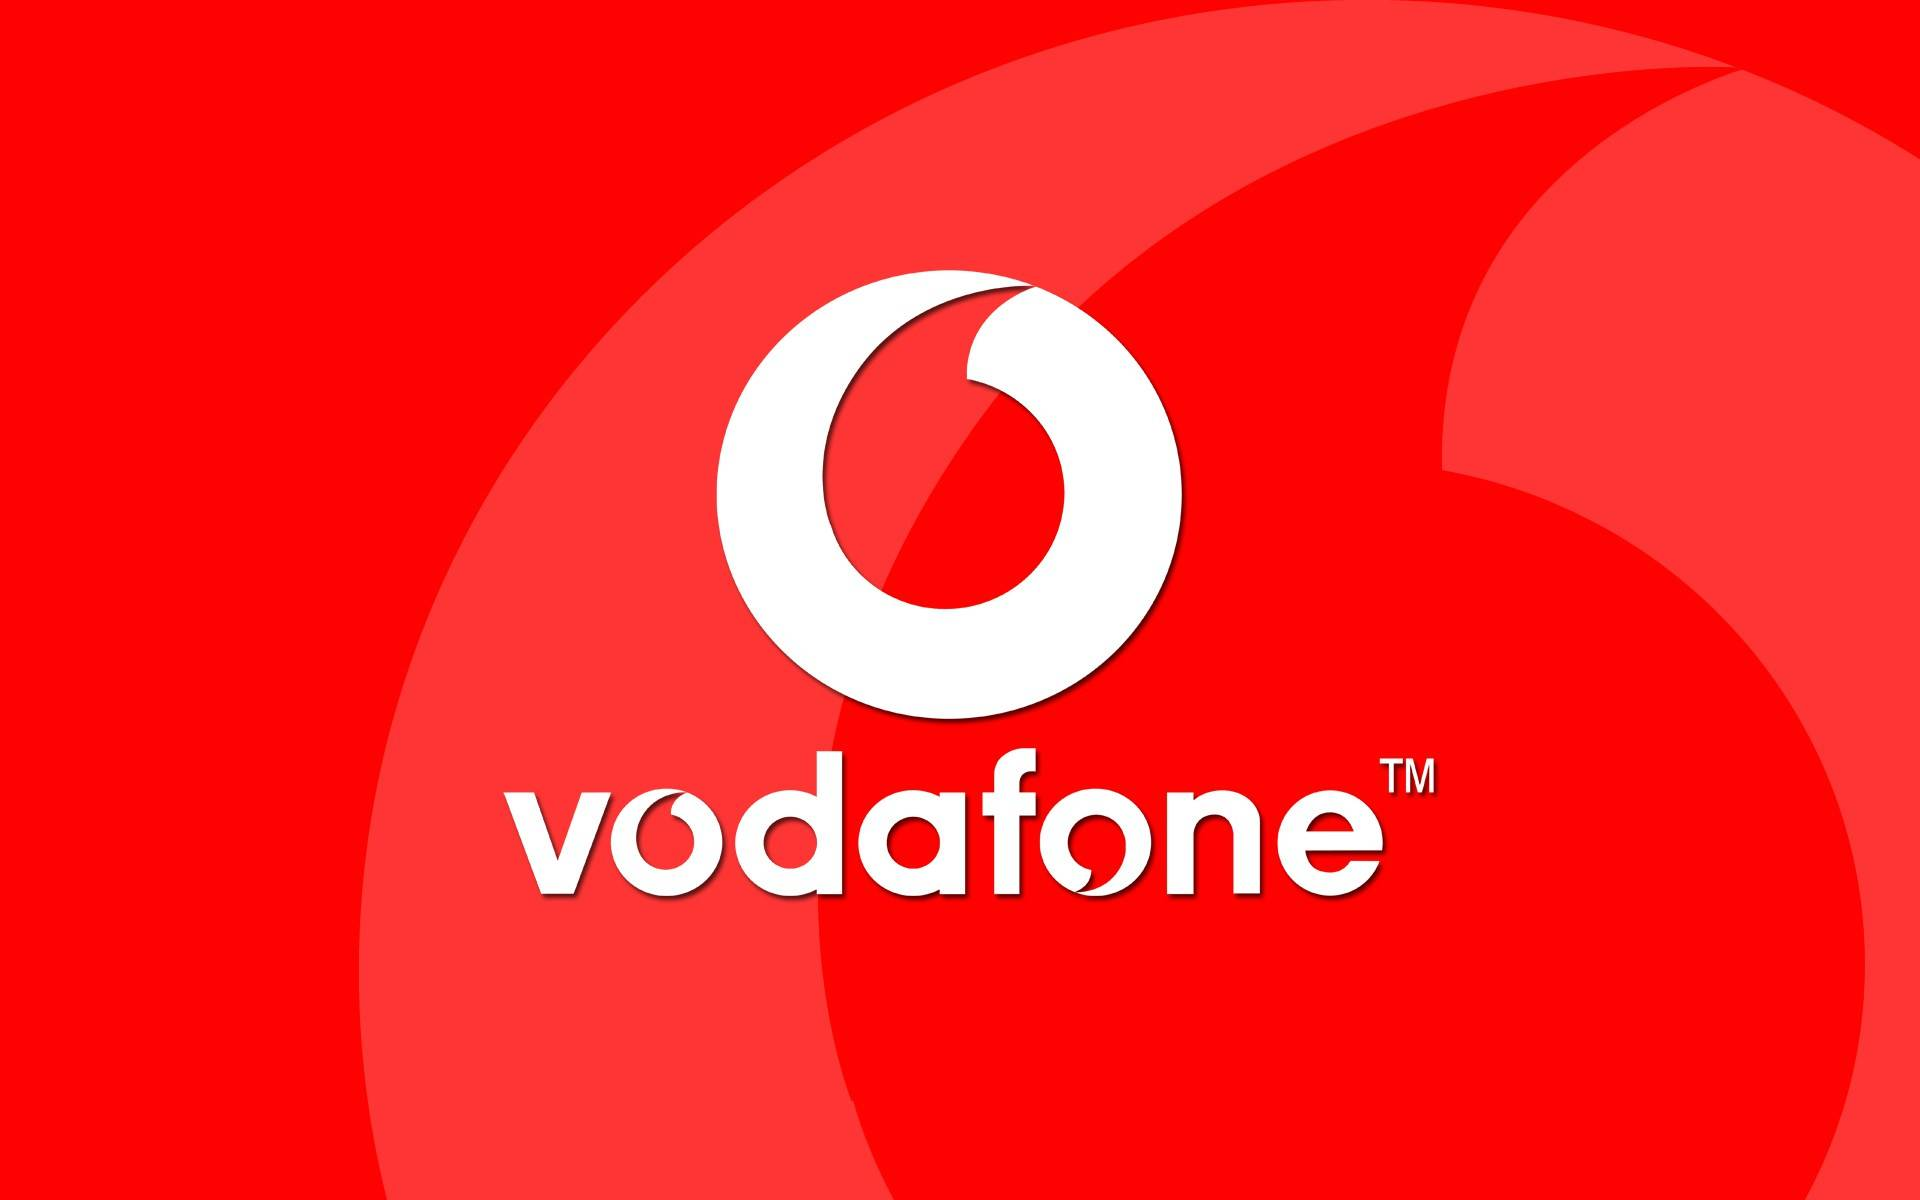 Vodafone are in Romania pe 29 Septembrie Ofertele MARI la Telefoane de care sa profiti!